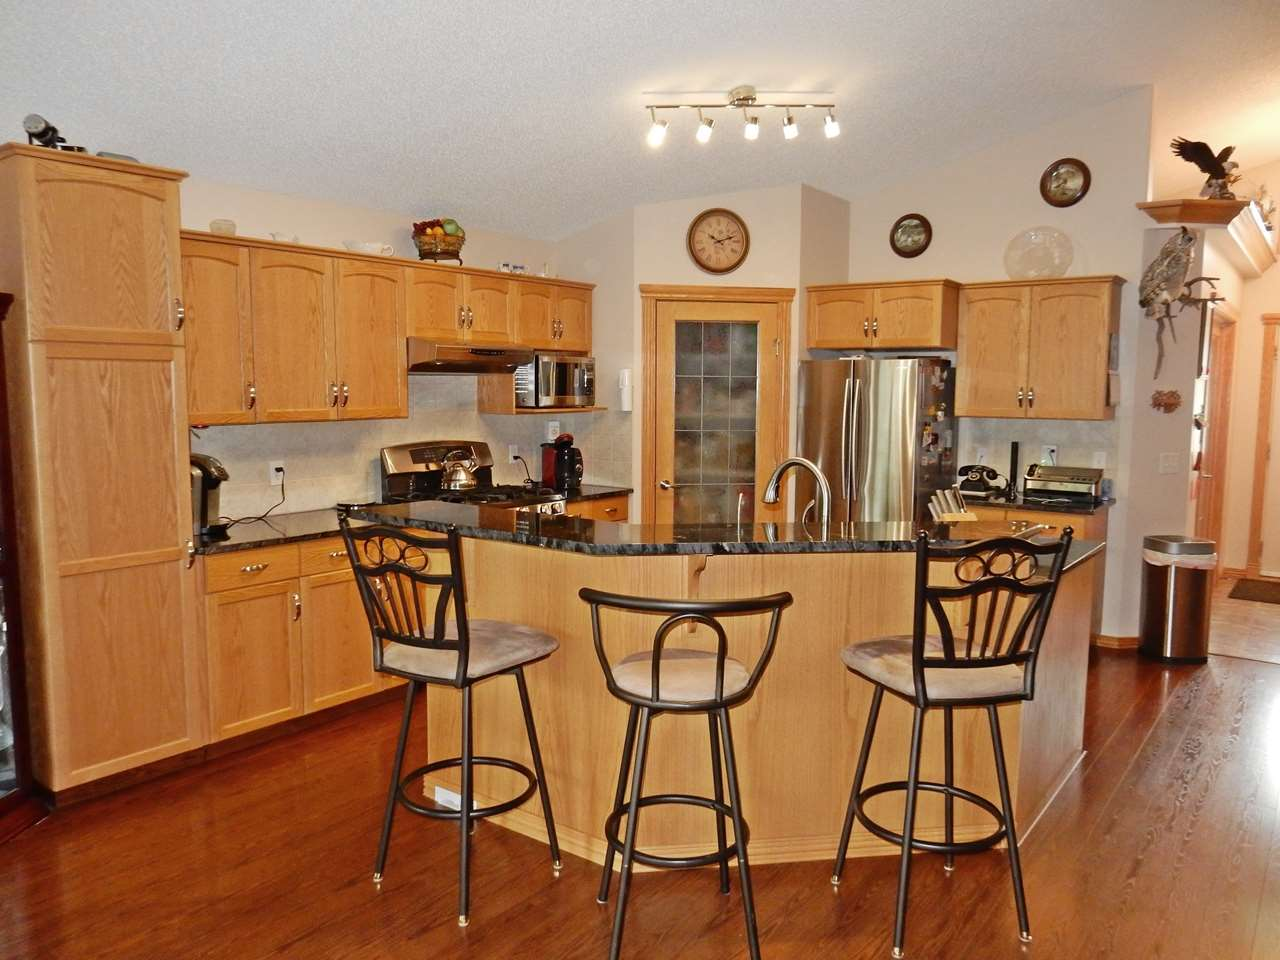 Photo 9: 4 Lost Point Lake Drive: Rural Sturgeon County House for sale : MLS(r) # E4049296